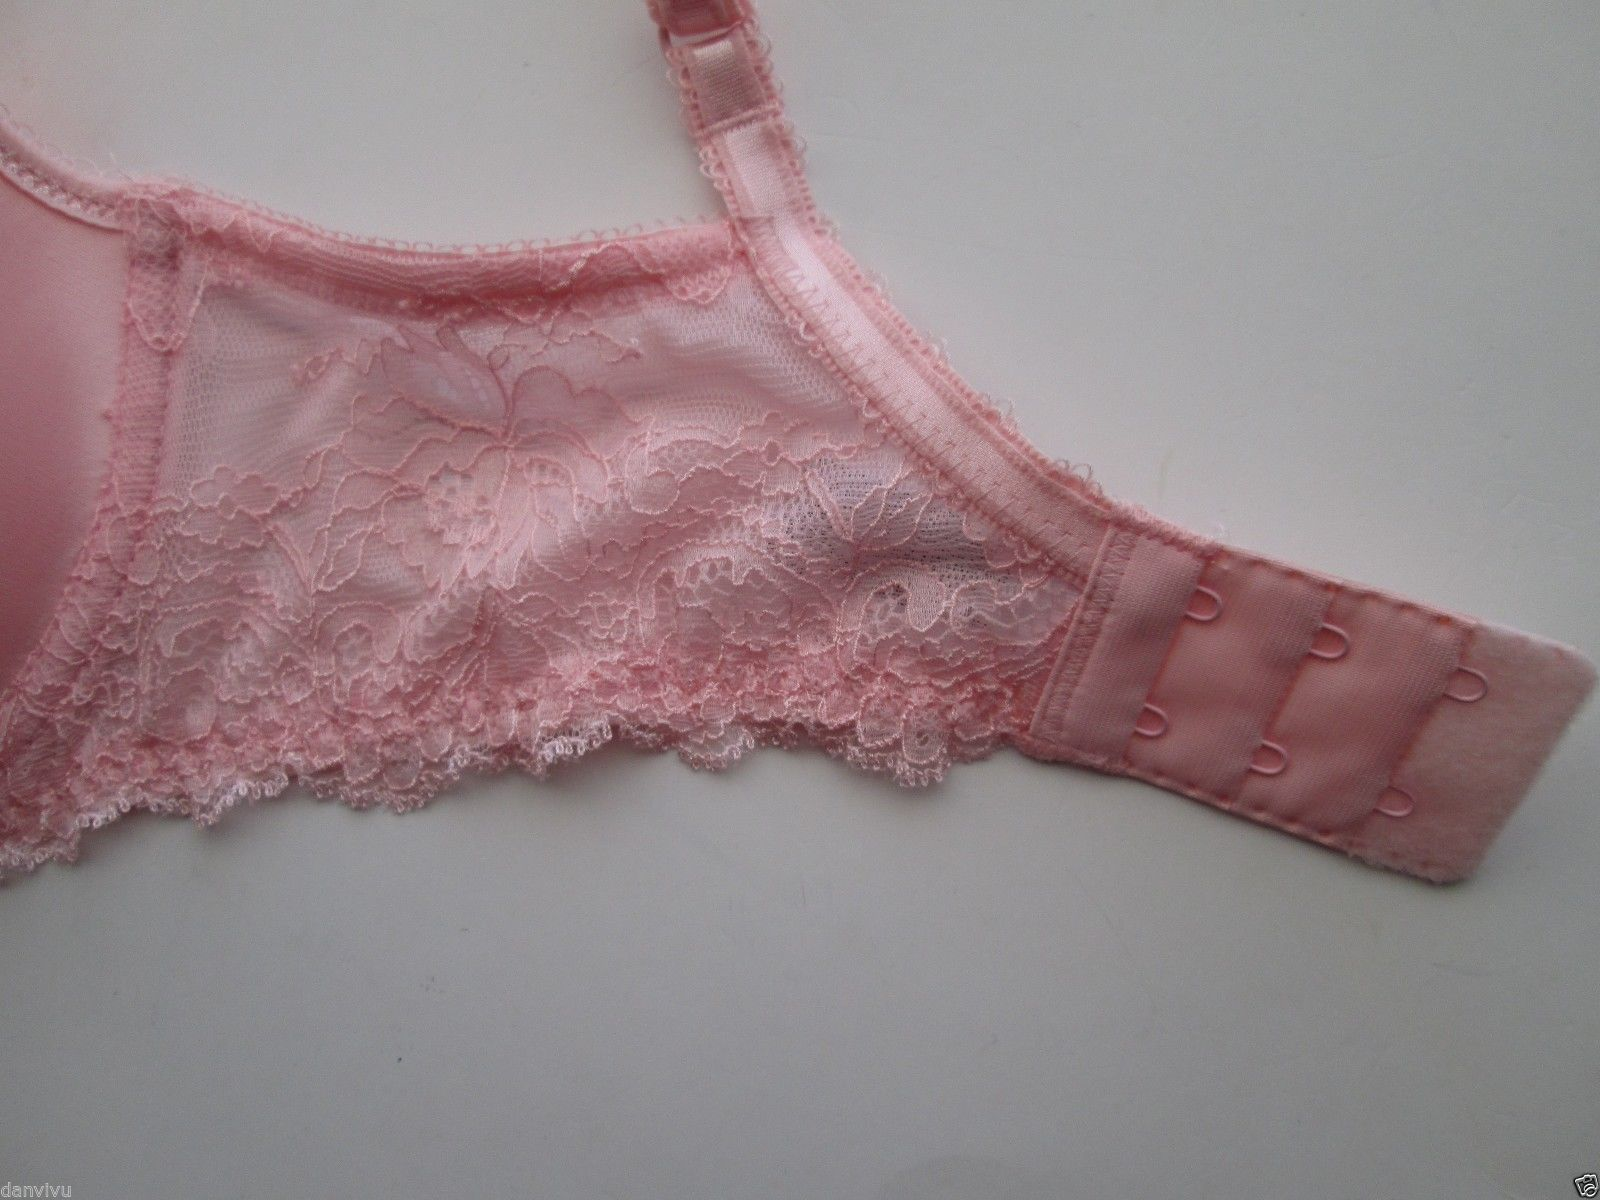 8f77be37ed Wacoal 853255 Seduction Contour T-Shirt Underwire Bra Misty Rose 32D MSRP   60